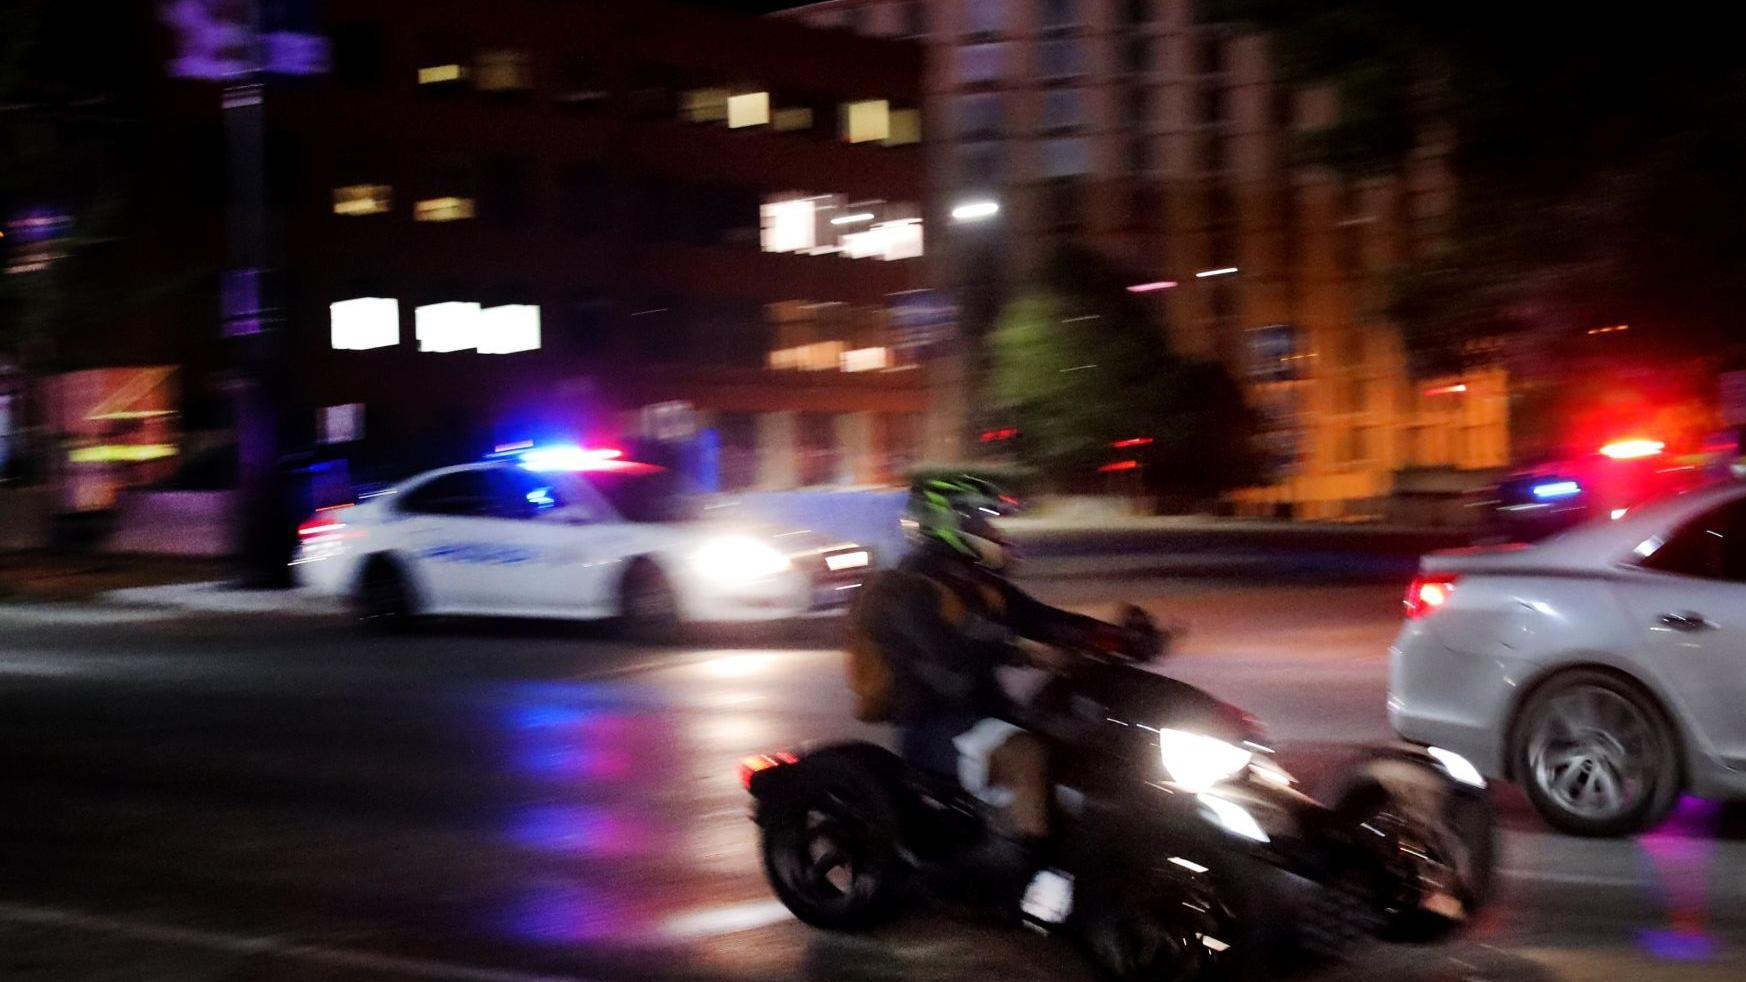 Rance Thomas: The problem is not enough police on the streets